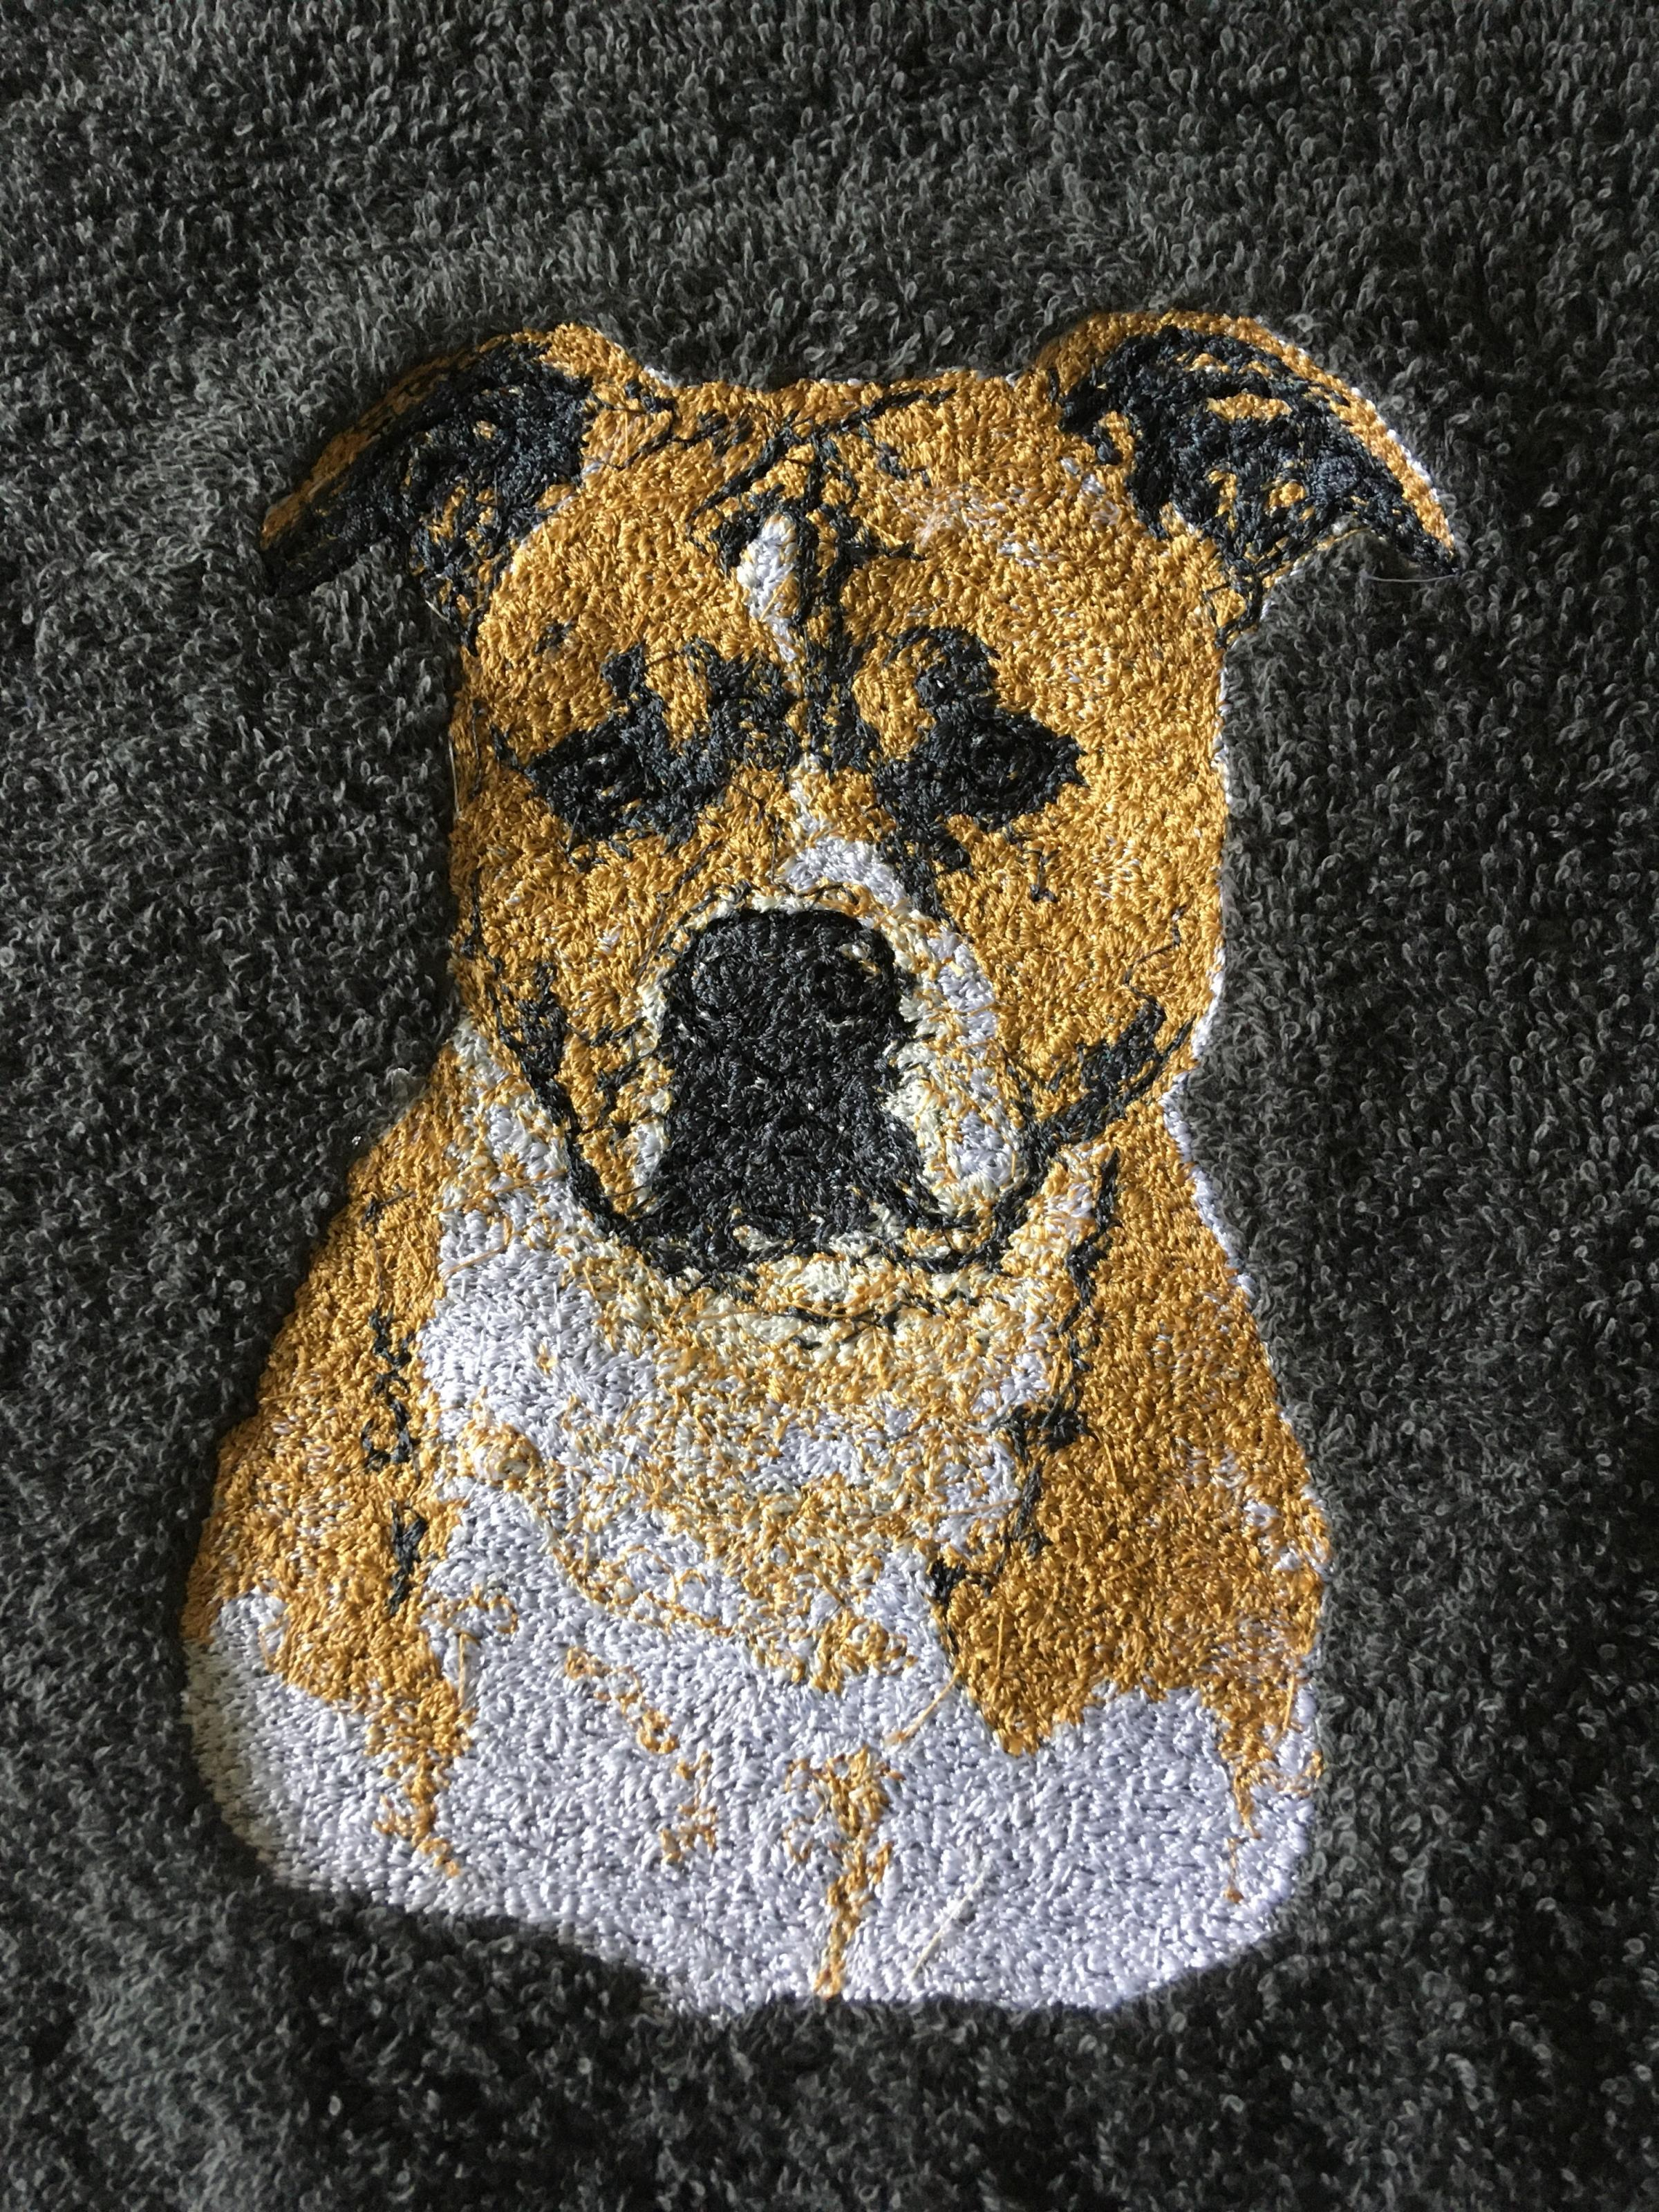 Embroidered American Staffordshire Terrier design